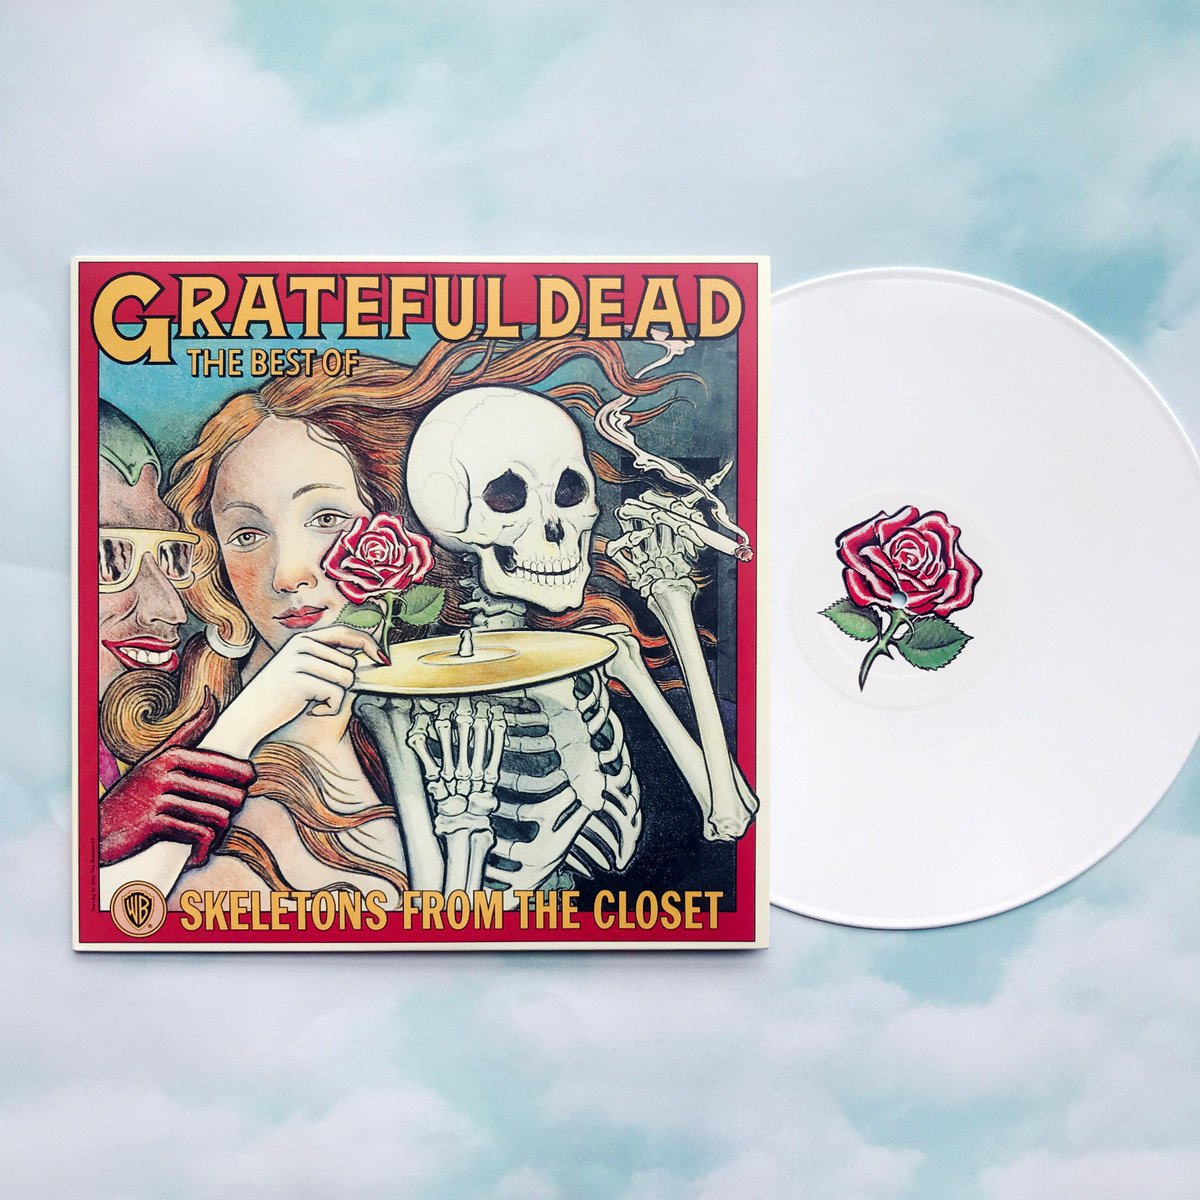 Grateful Dead On Twitter A Limited Edition White Lp Of